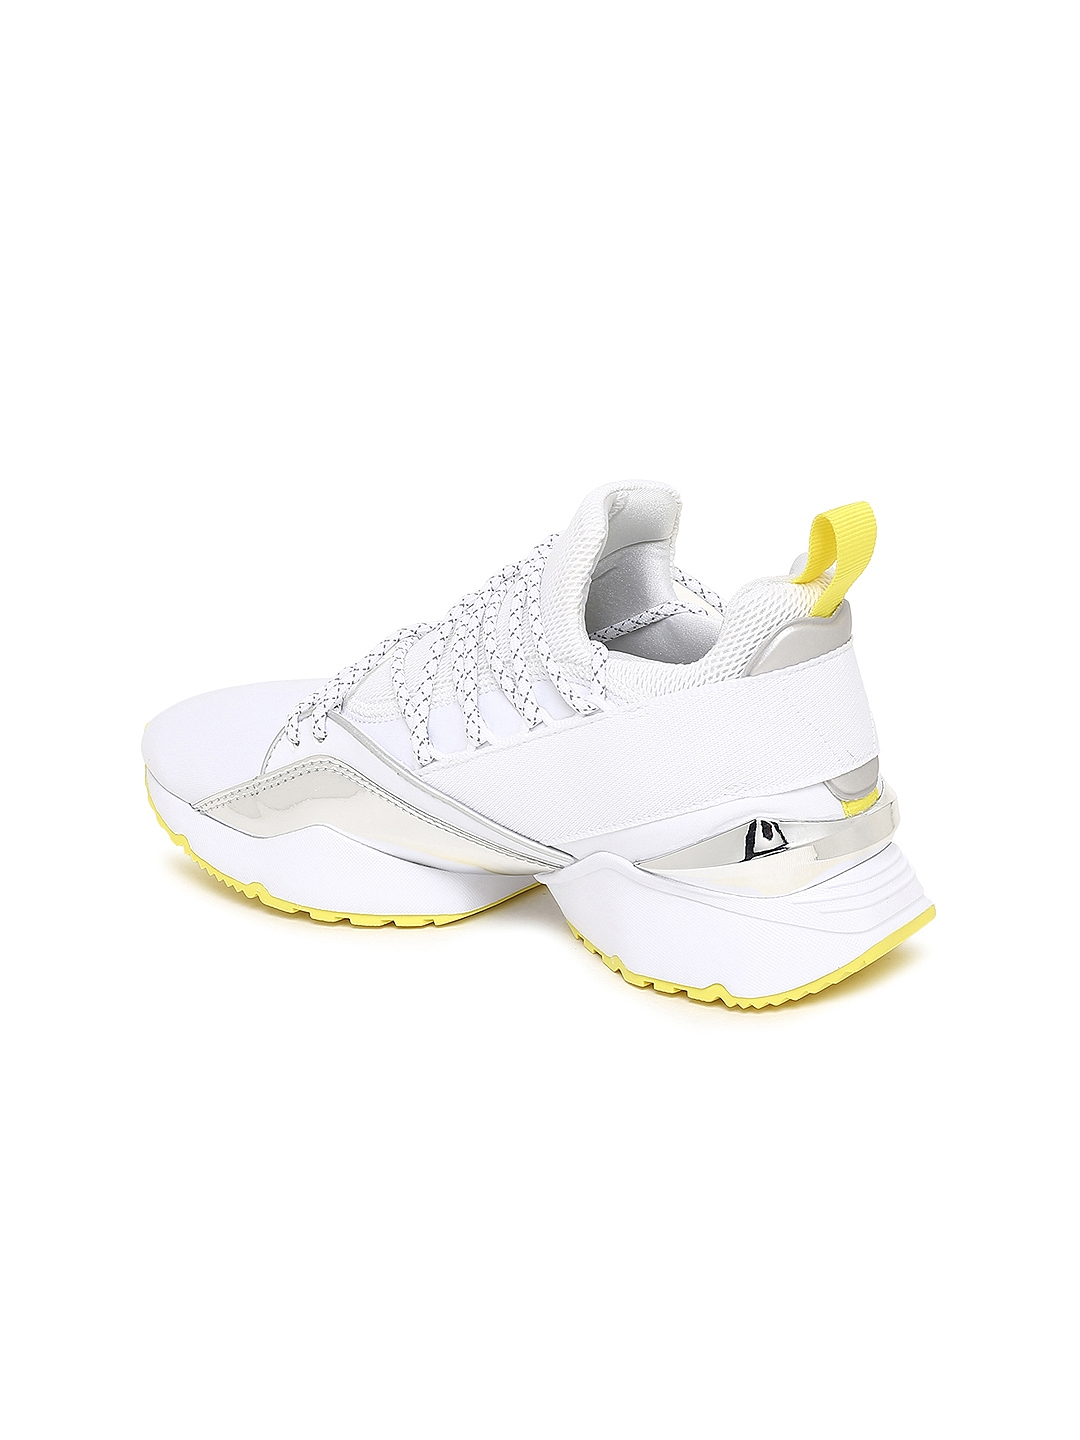 new products 70748 9cf3a Puma Women White Muse Maia TZ Metallic Sneakers